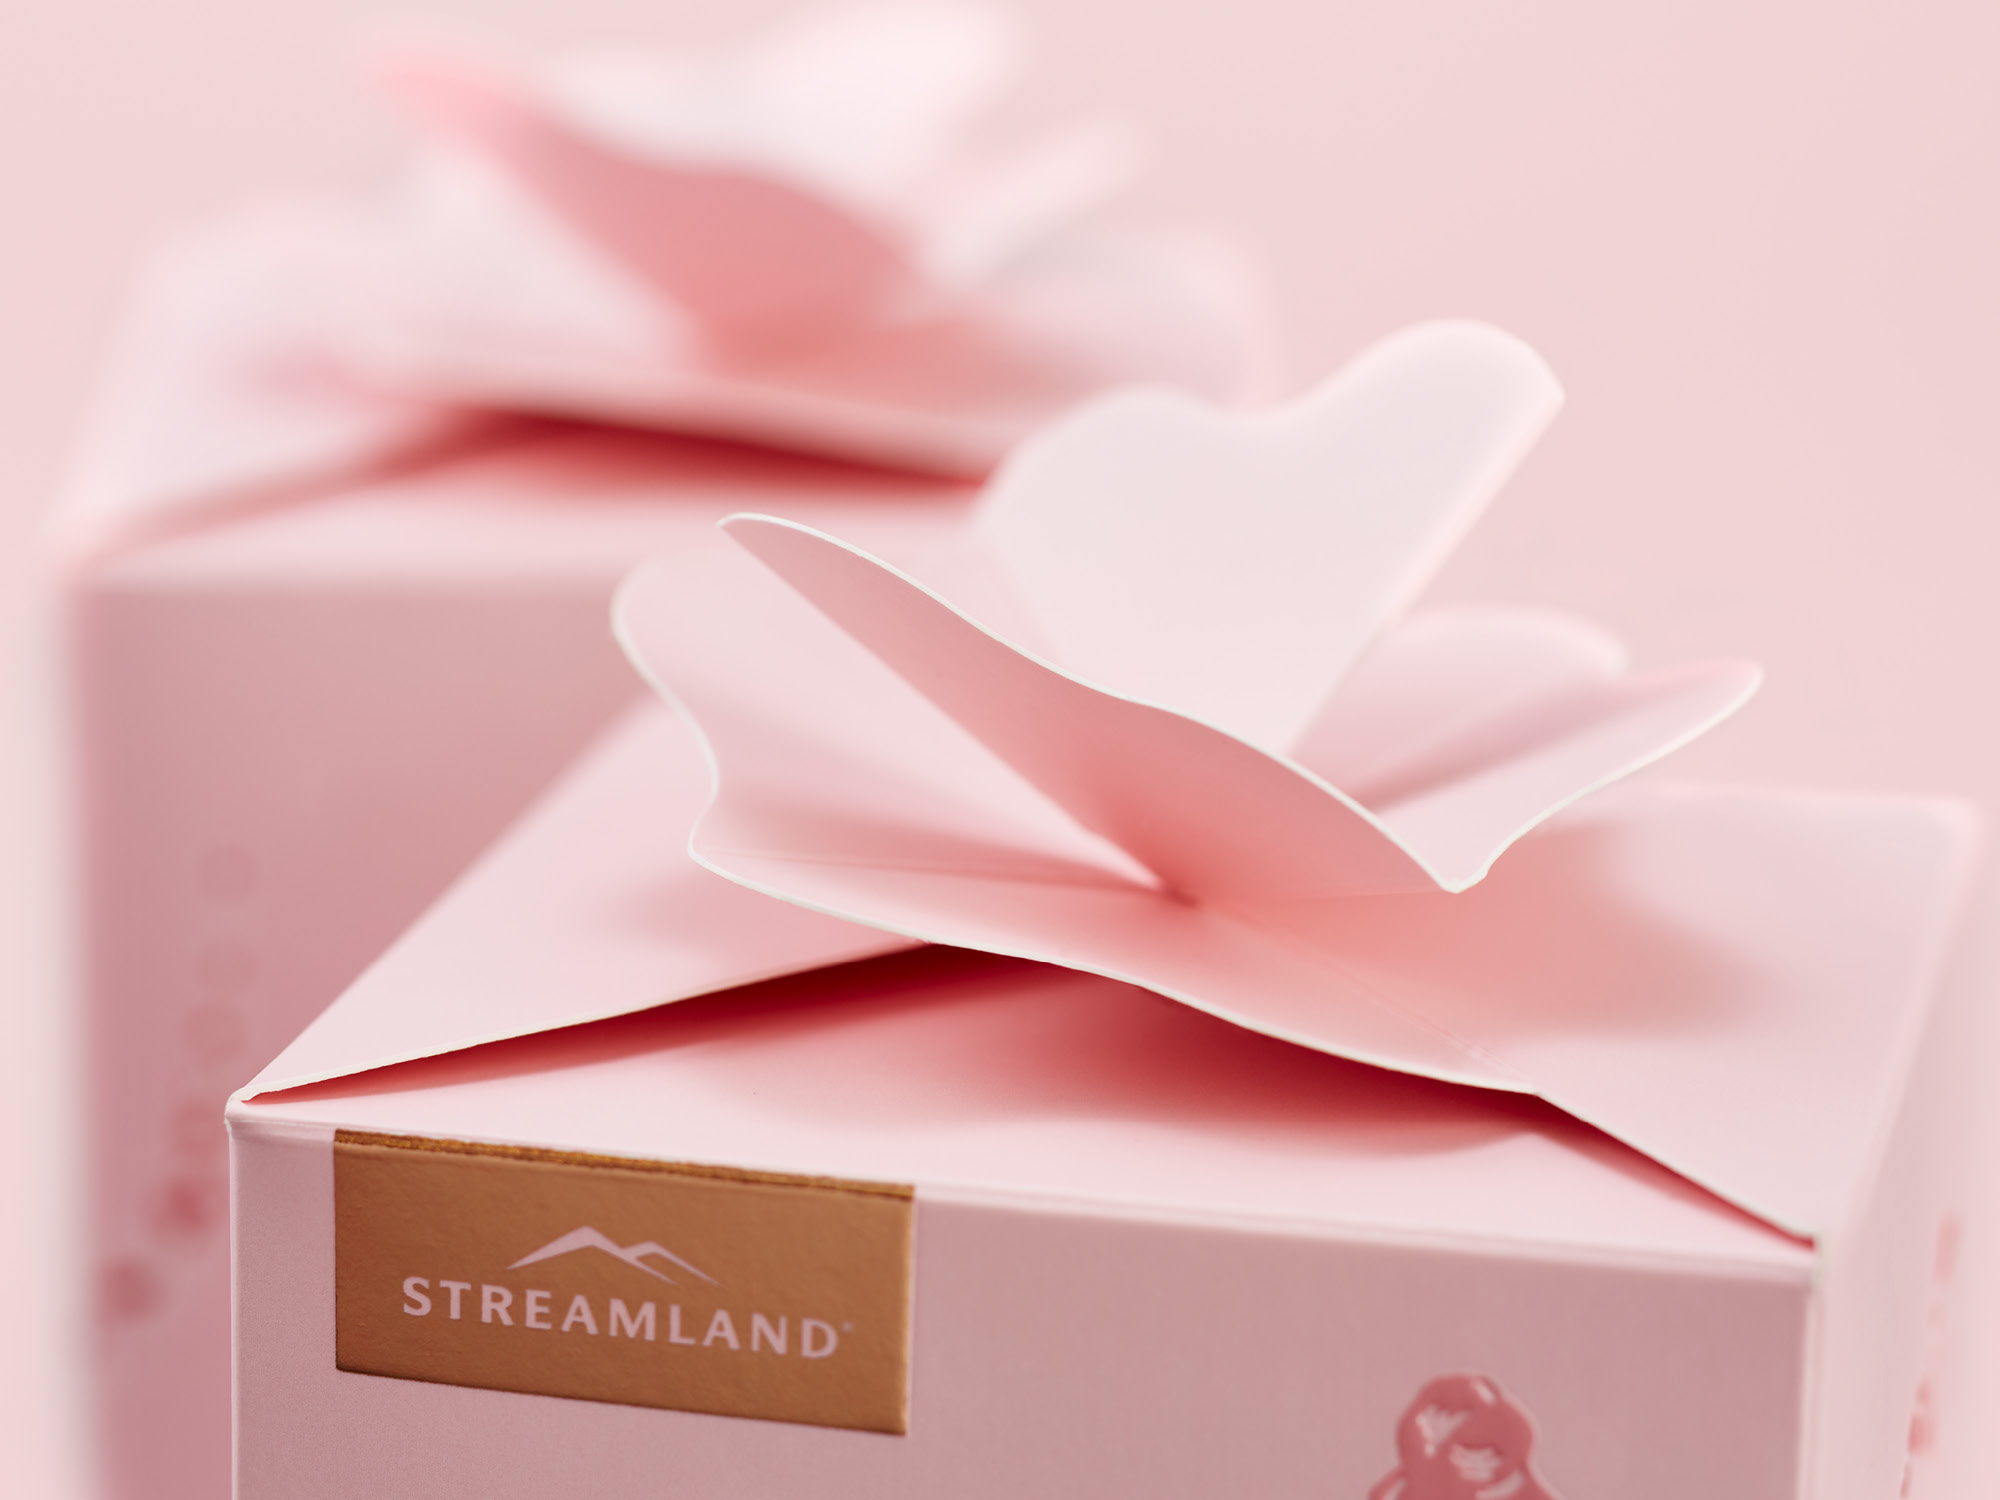 onfire deisgn streamland rose honey packaging design 19